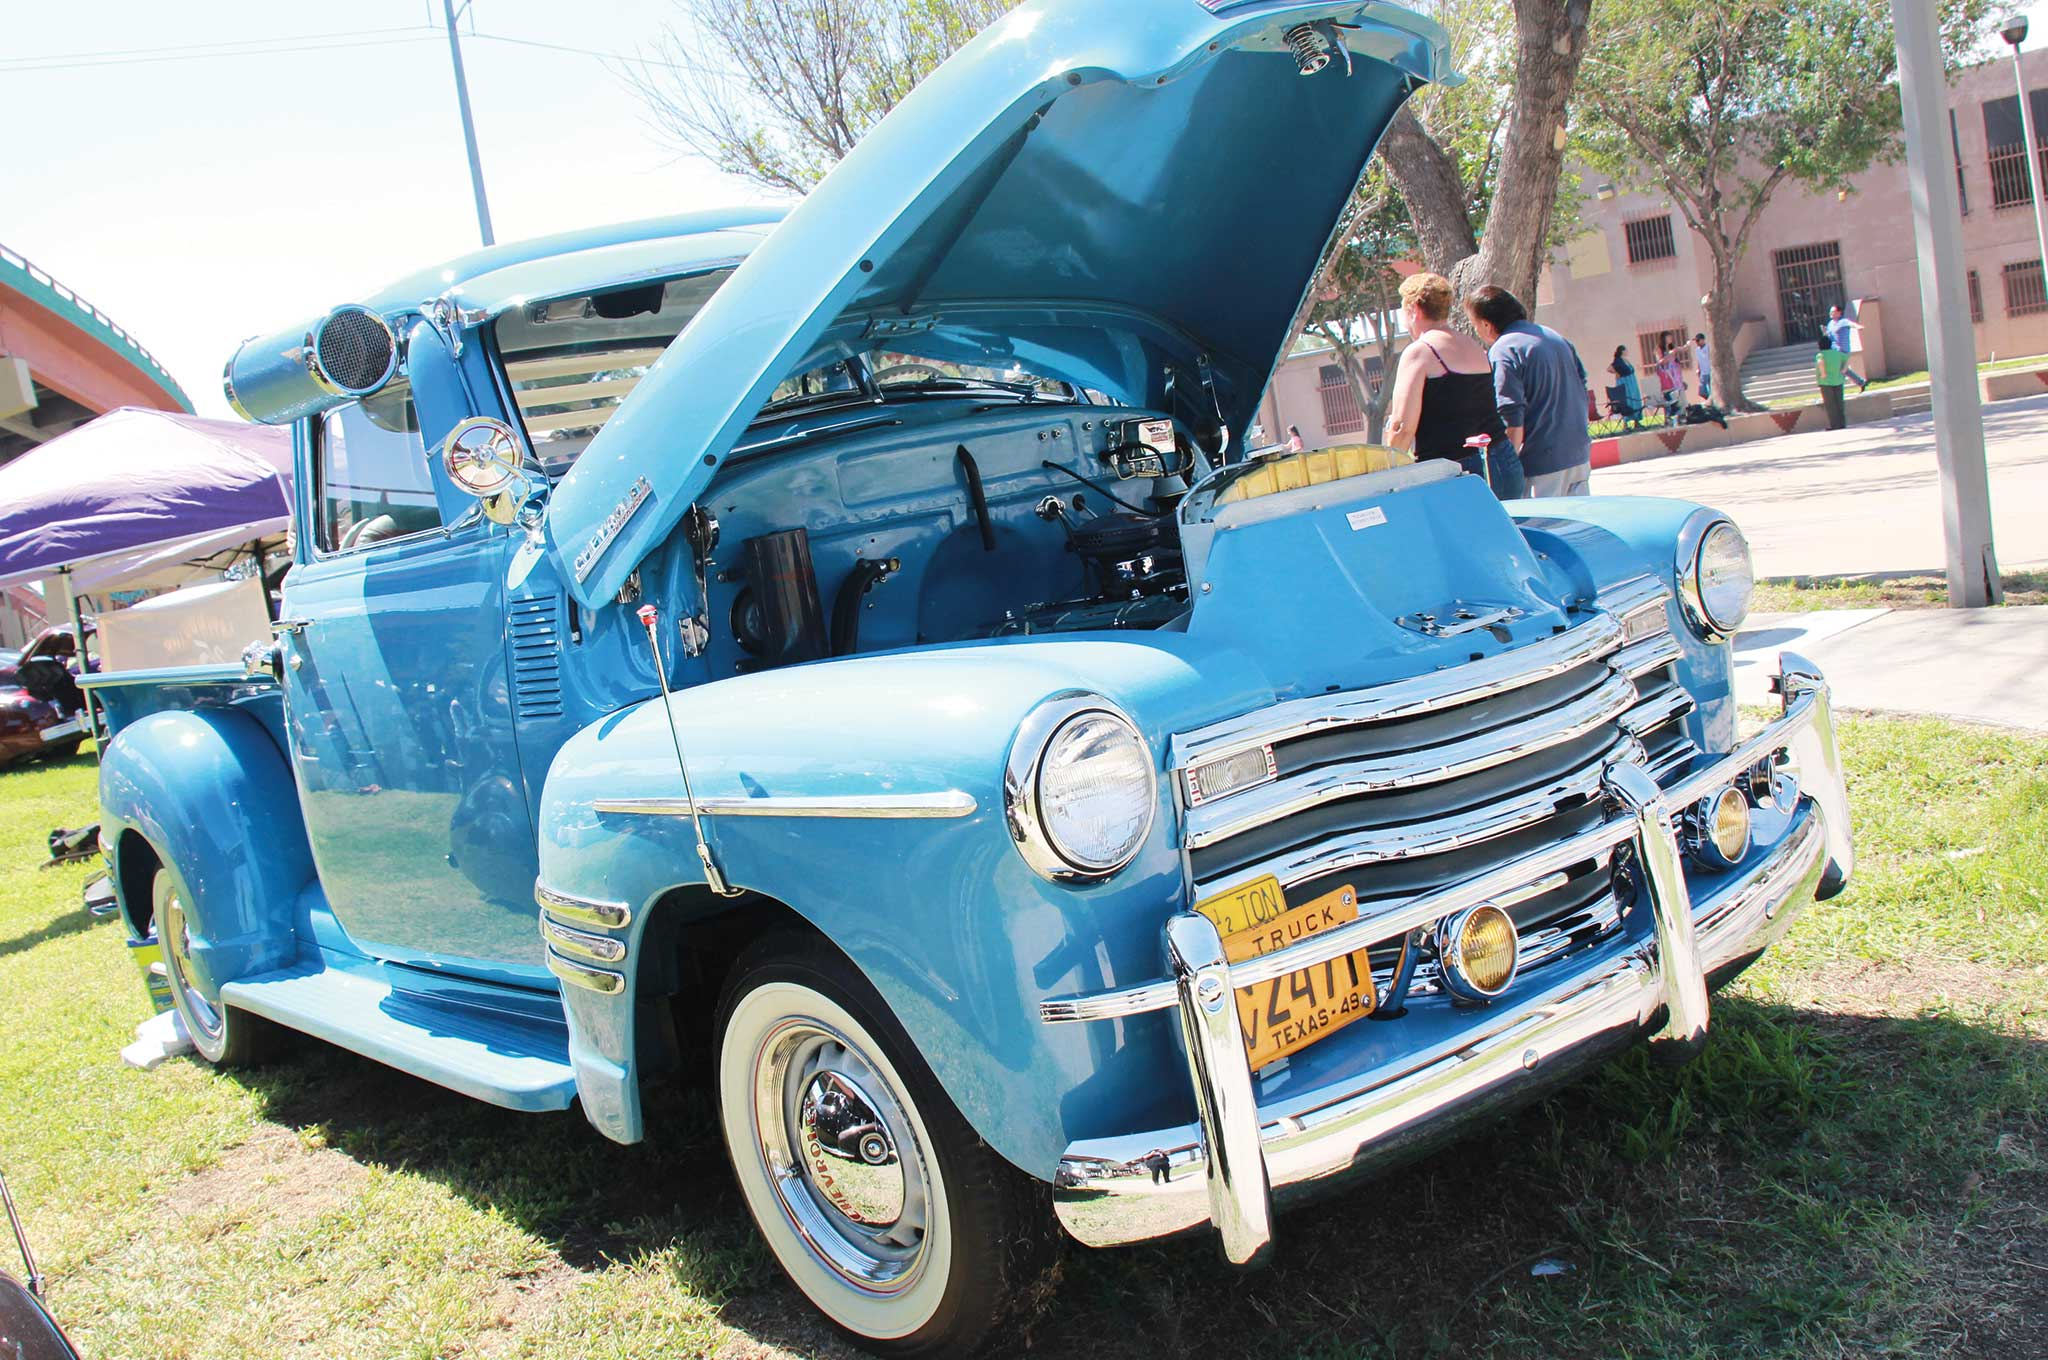 10th-annual-lincoln-park-day-chevrolet-3100-011